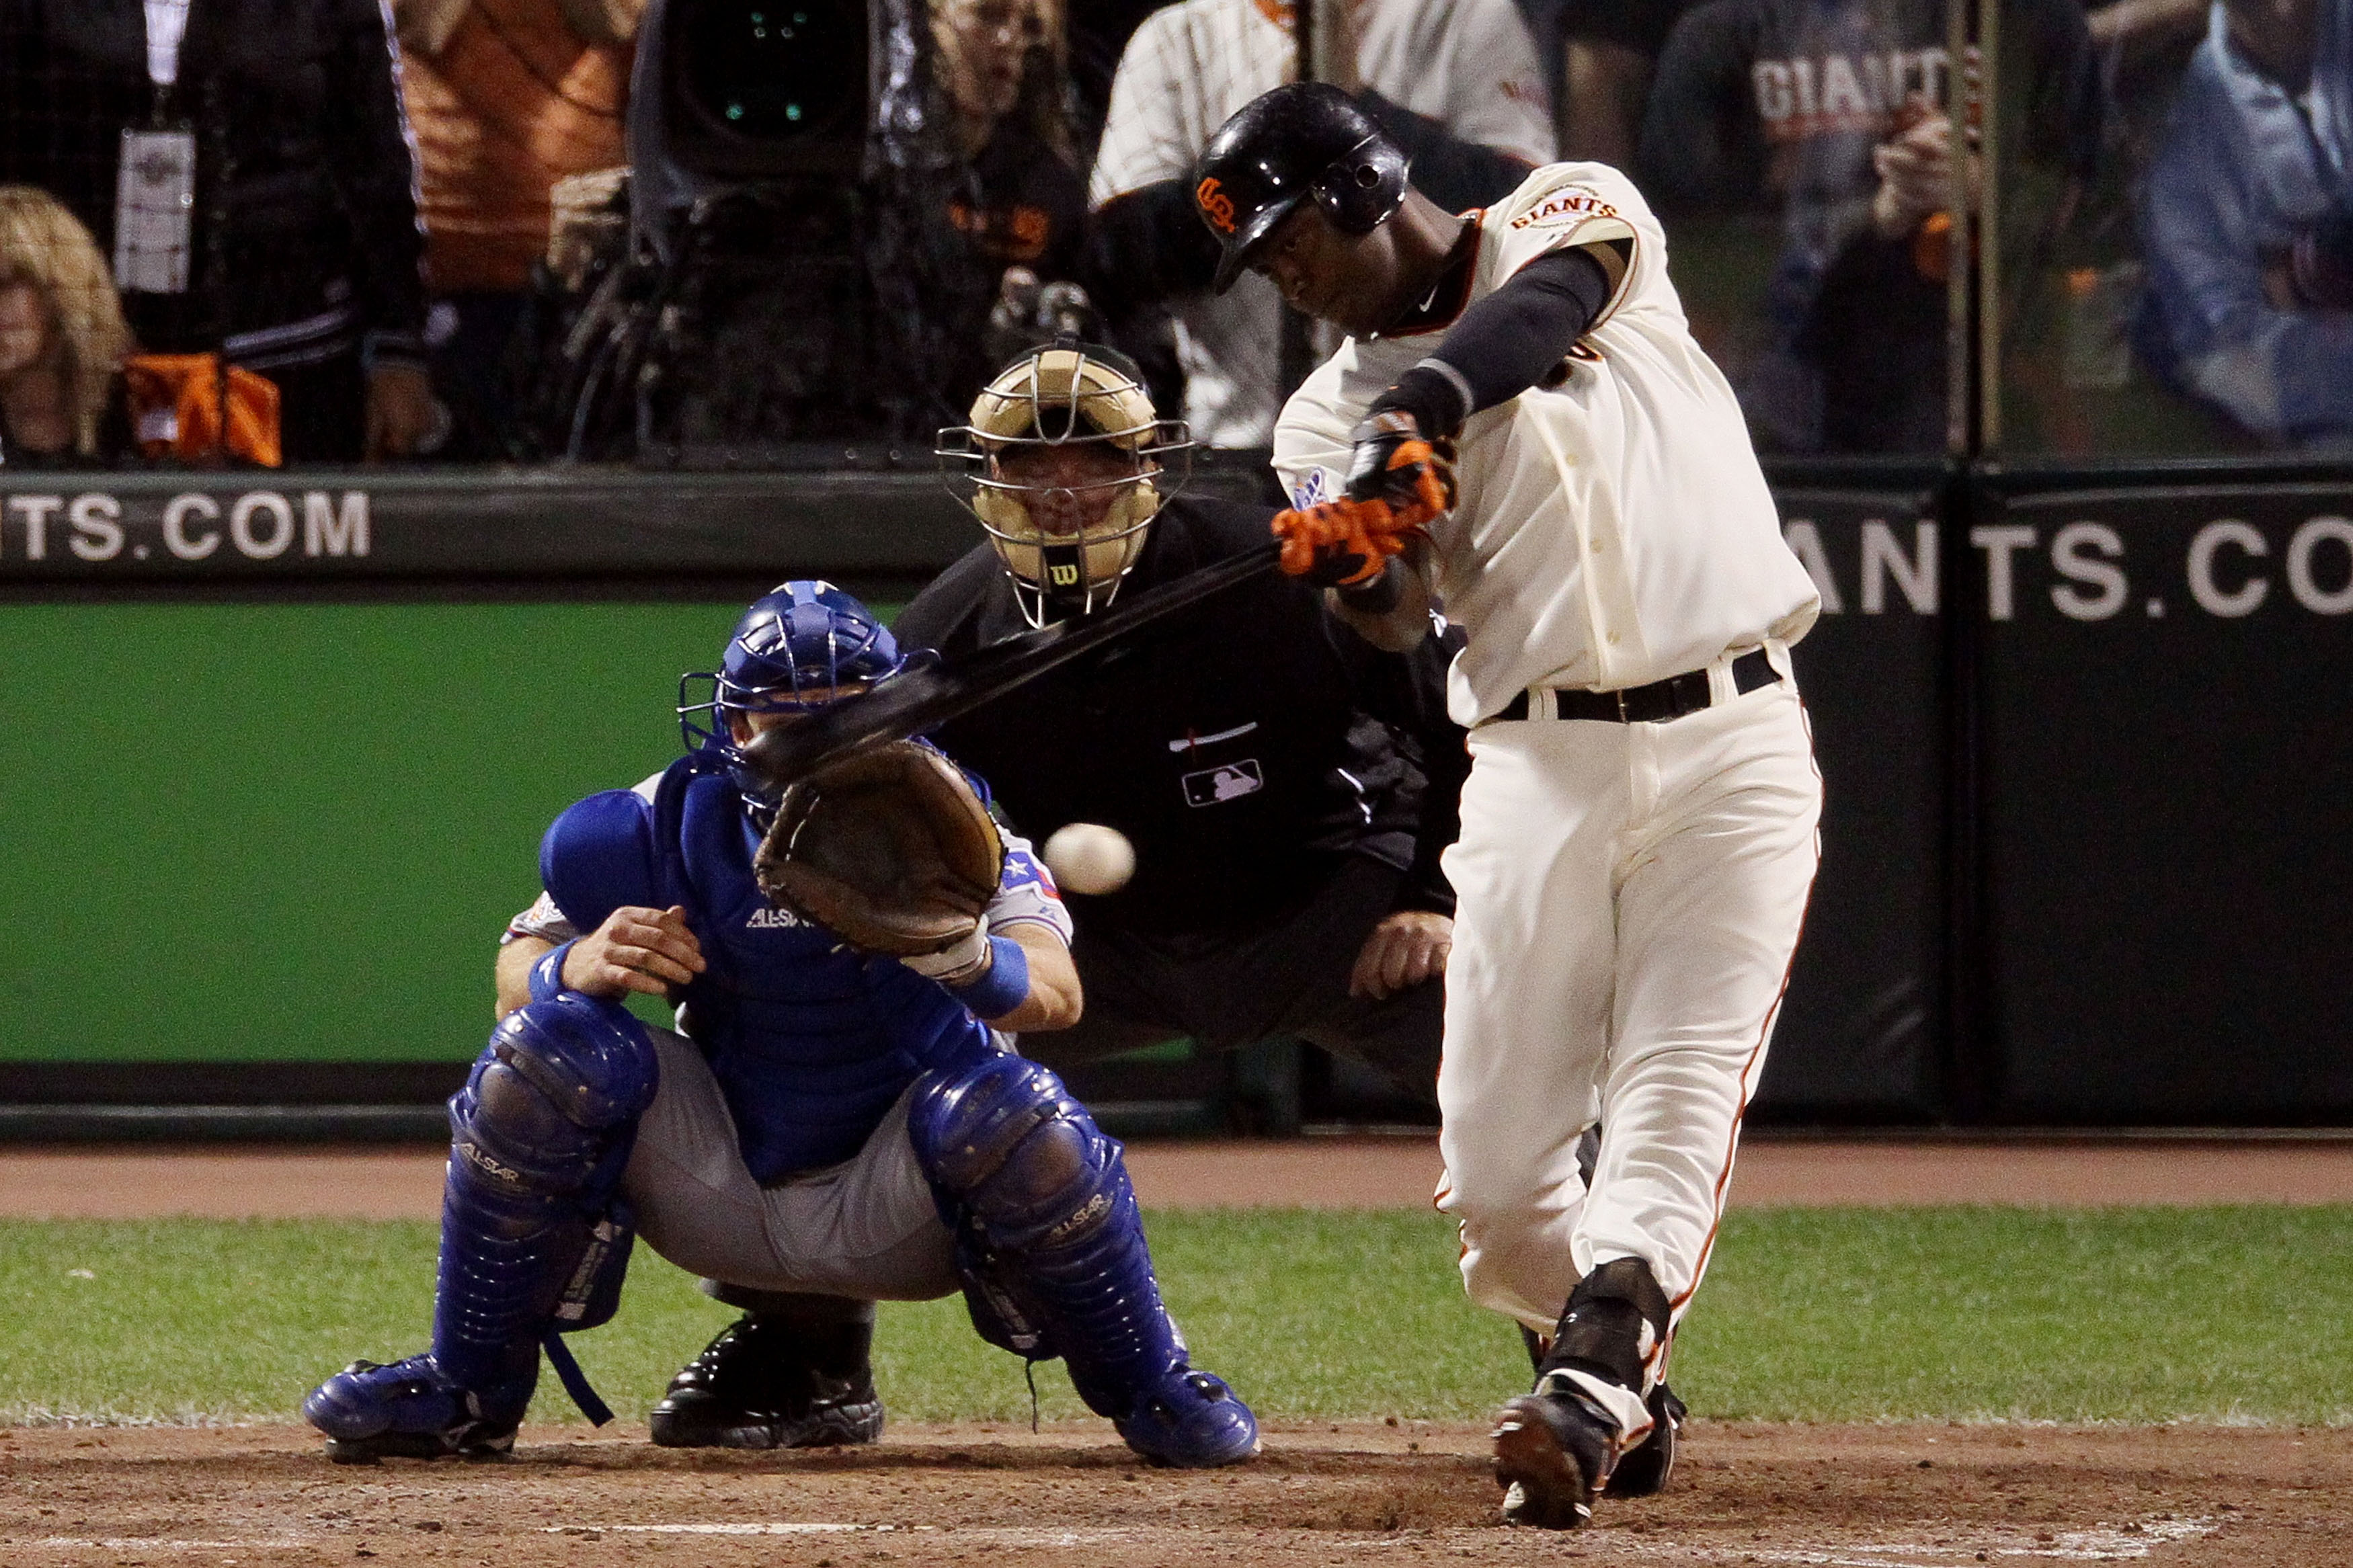 SAN FRANCISCO - OCTOBER 28:  Edgar Renteria #16 of the San Francisco Giants hits a two-run single in the eighth inning while taking on the Texas Rangers in Game Two of the 2010 MLB World Series at AT&T Park on October 28, 2010 in San Francisco, California